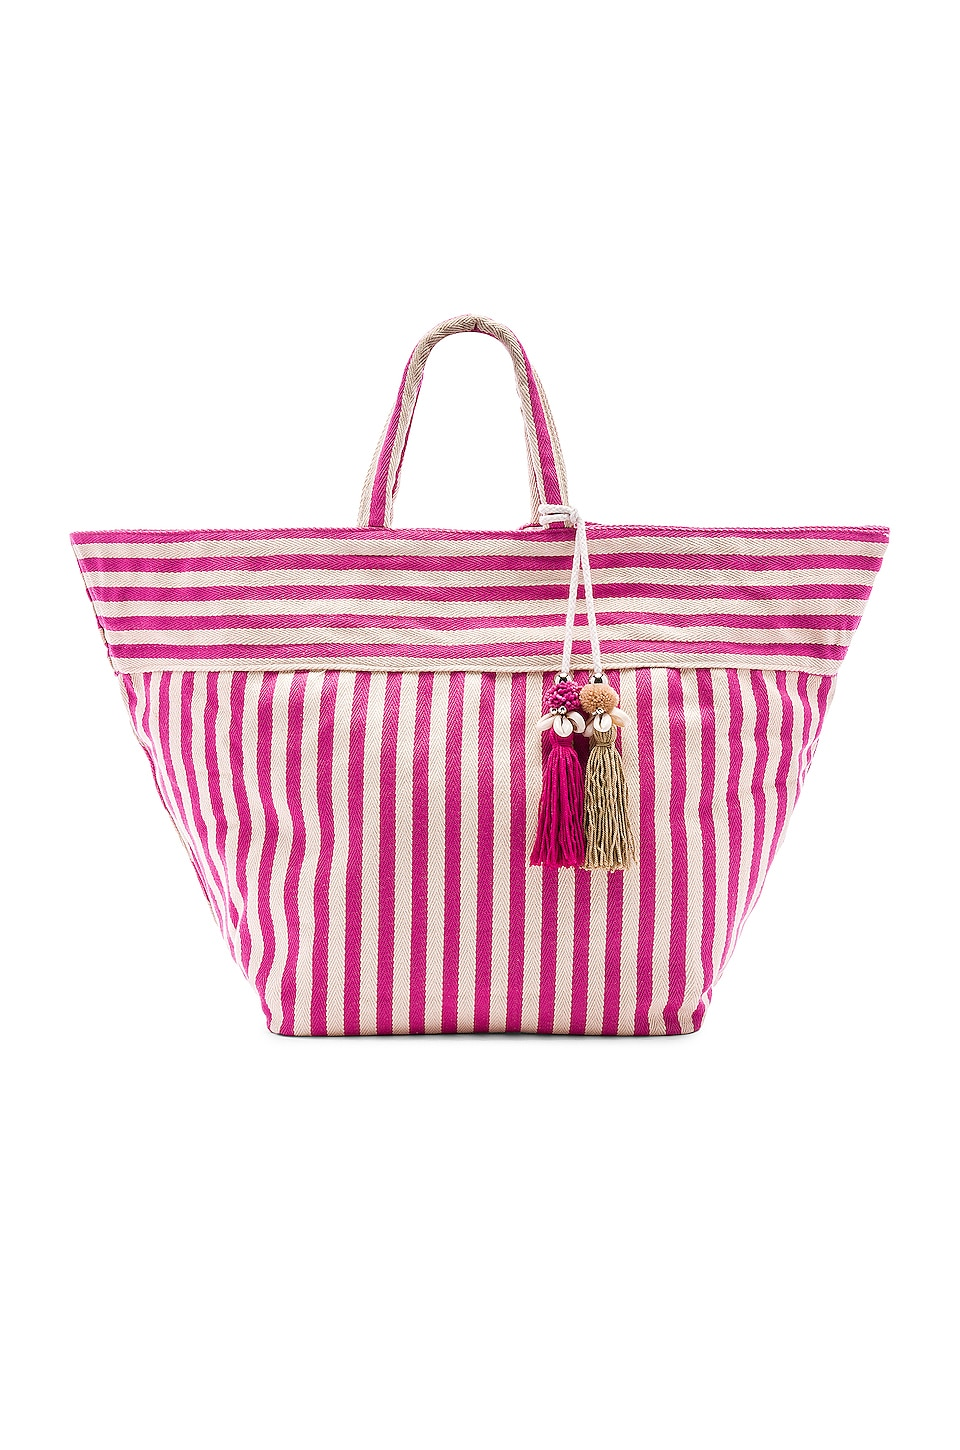 JADEtribe Valerie Large Beach Bag Puka in Pink